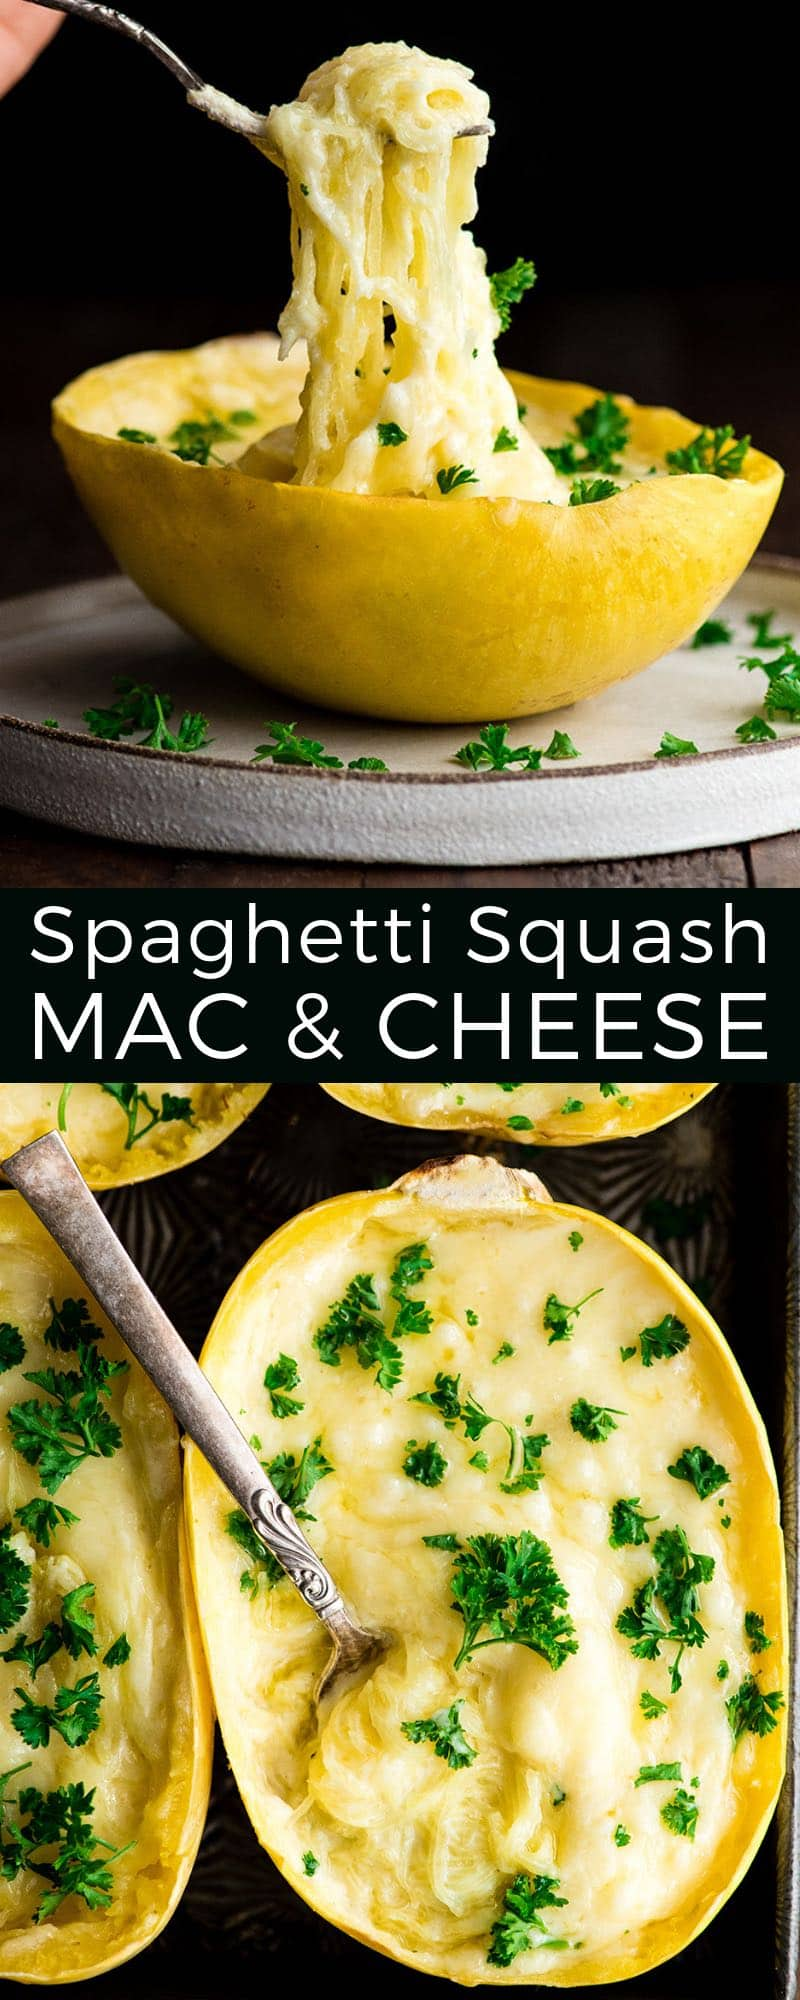 This Easy & Healthy Spaghetti Squash Mac and Cheese Recipe is low-carb and keto! It's a delicious gluten-free dinner, side dish or meal prep idea! #lowcarb #spaghettisquash #macandcheese #glutenfree #easy #recipe #keto